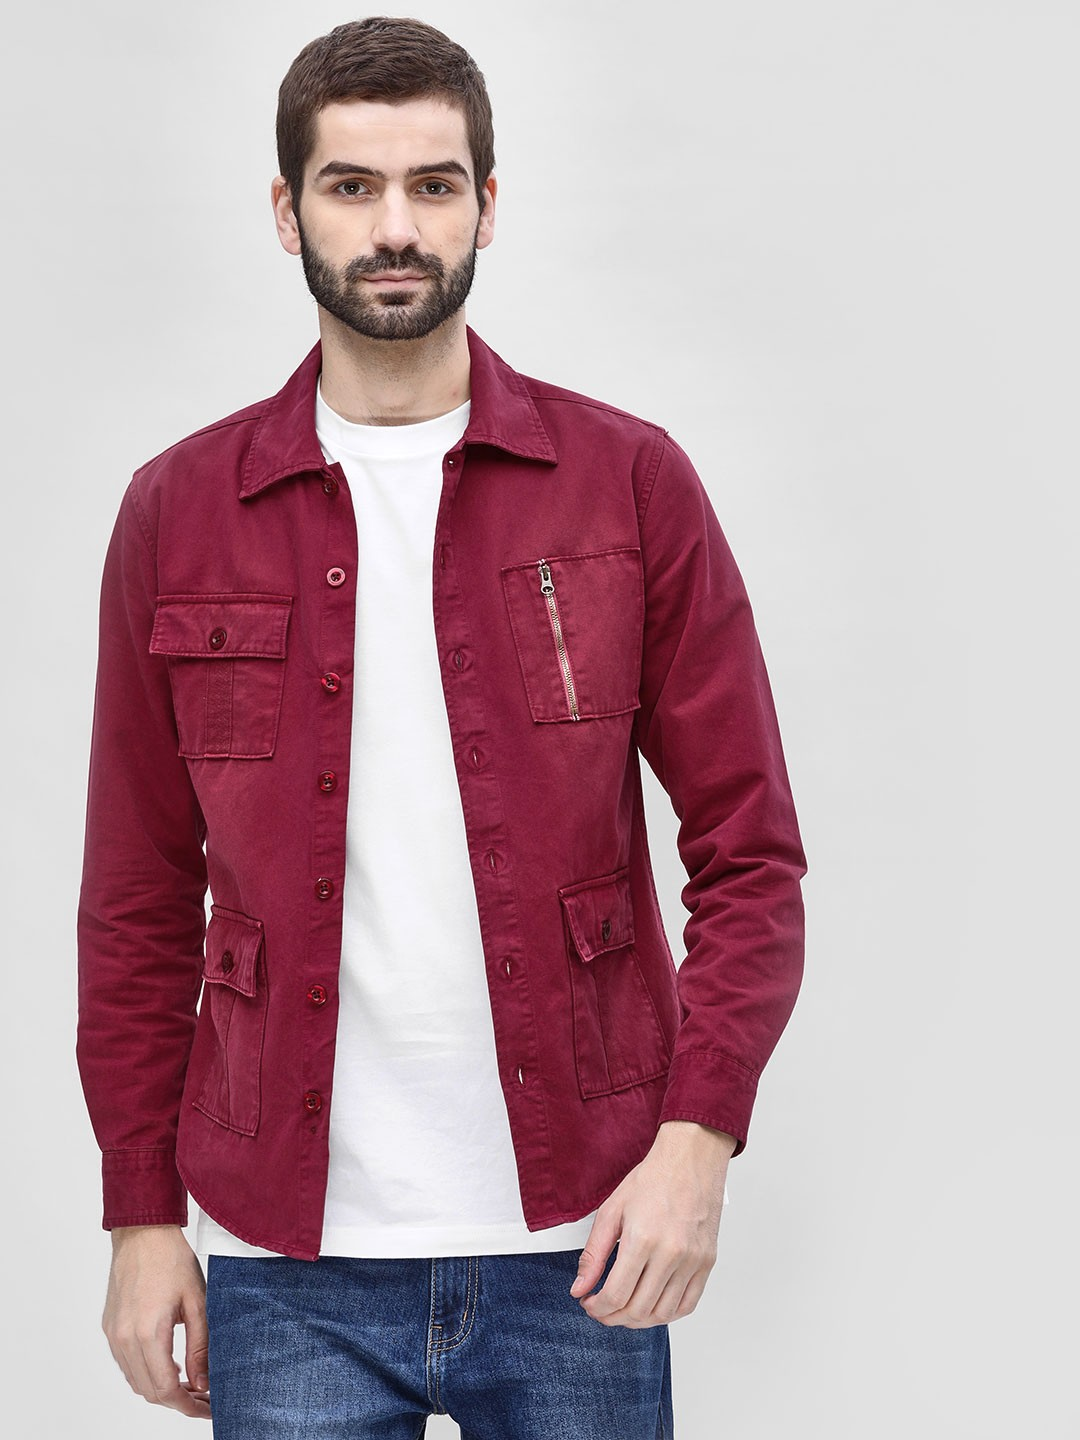 Blue Saint Maroon Four Pocket Slim Shacket 1